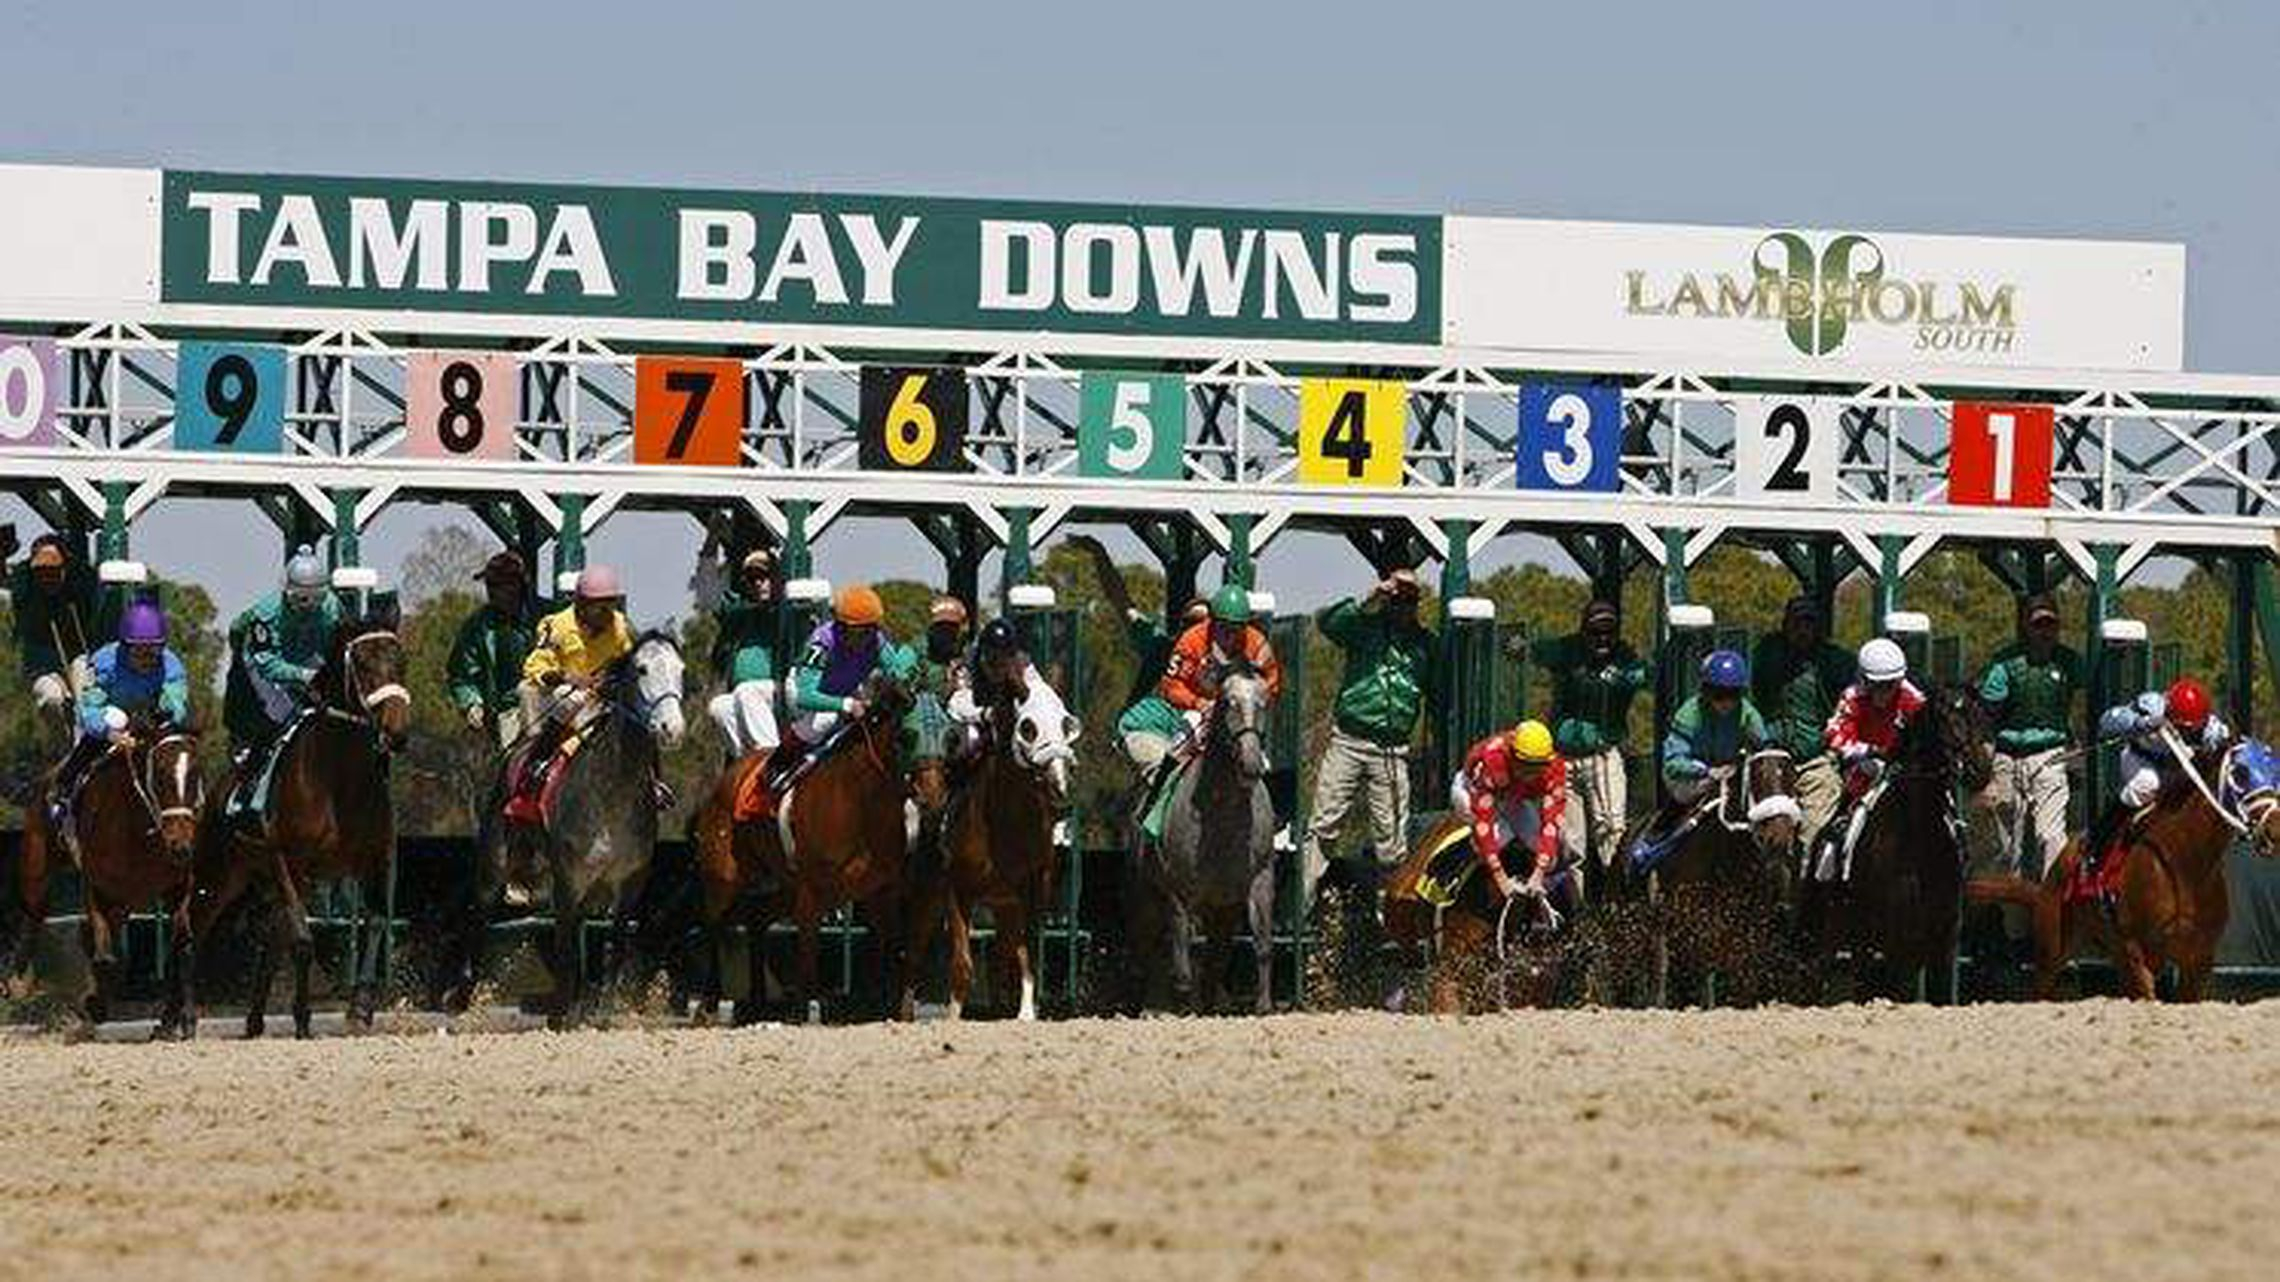 Tampa Bay Downs Closing Races To Fans After This Weekend Intended For Tampa Downs Race Dates